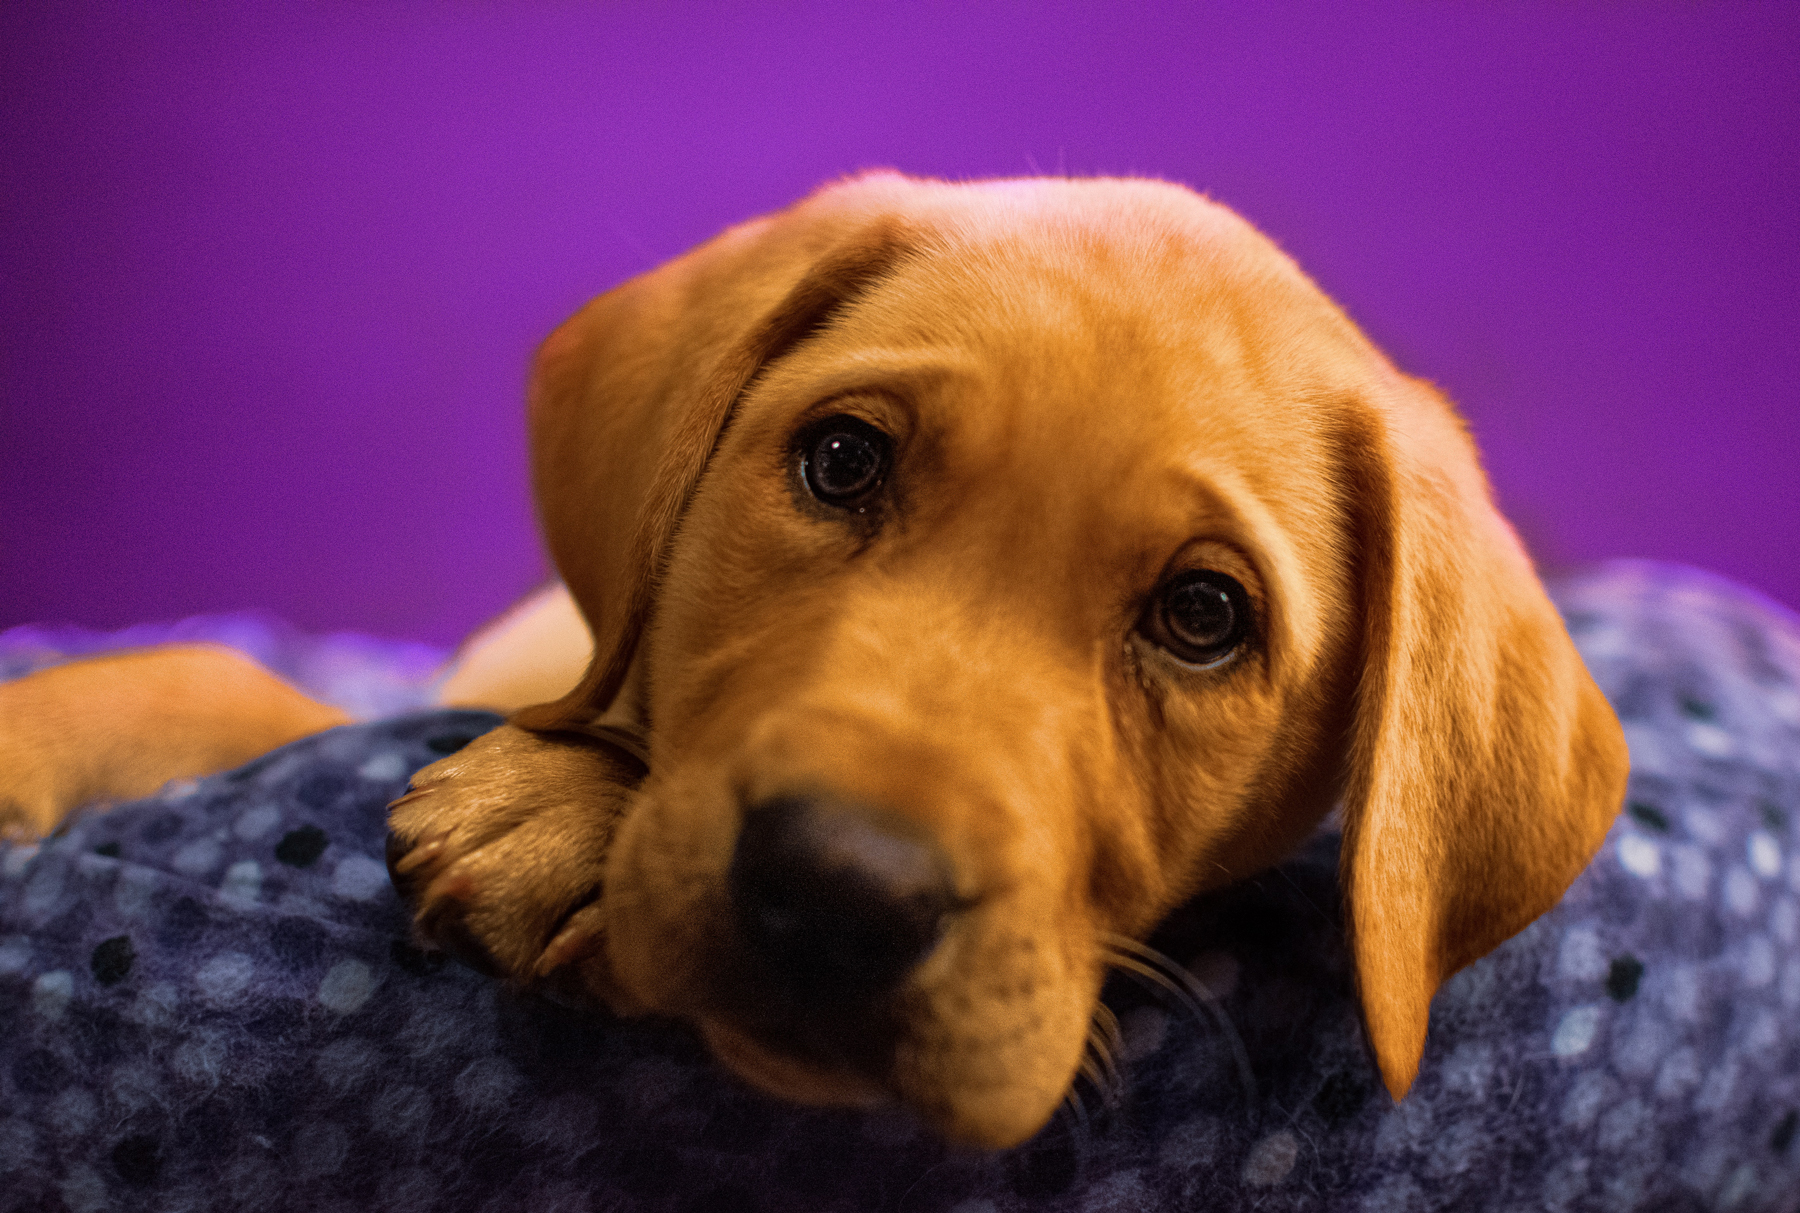 A golden Labrador, in an article about the best dog breed depending on your personality type